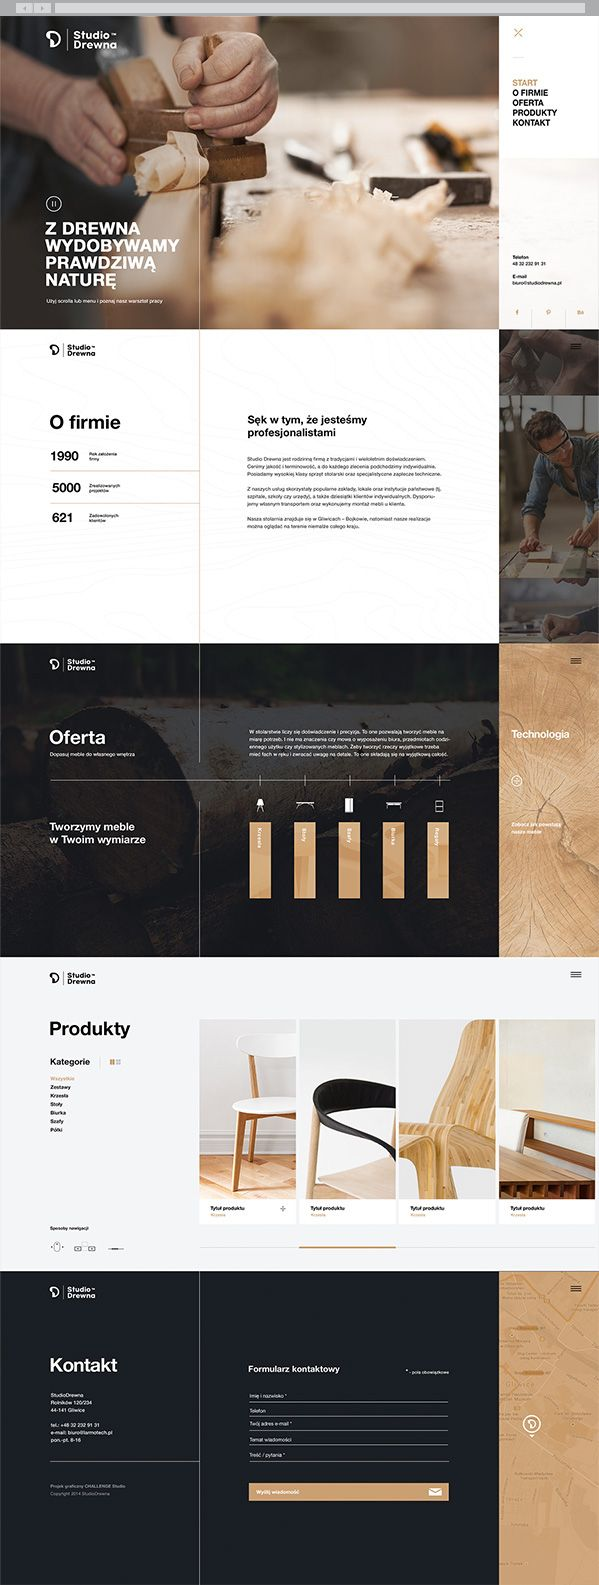 Studio Drewna on Behance